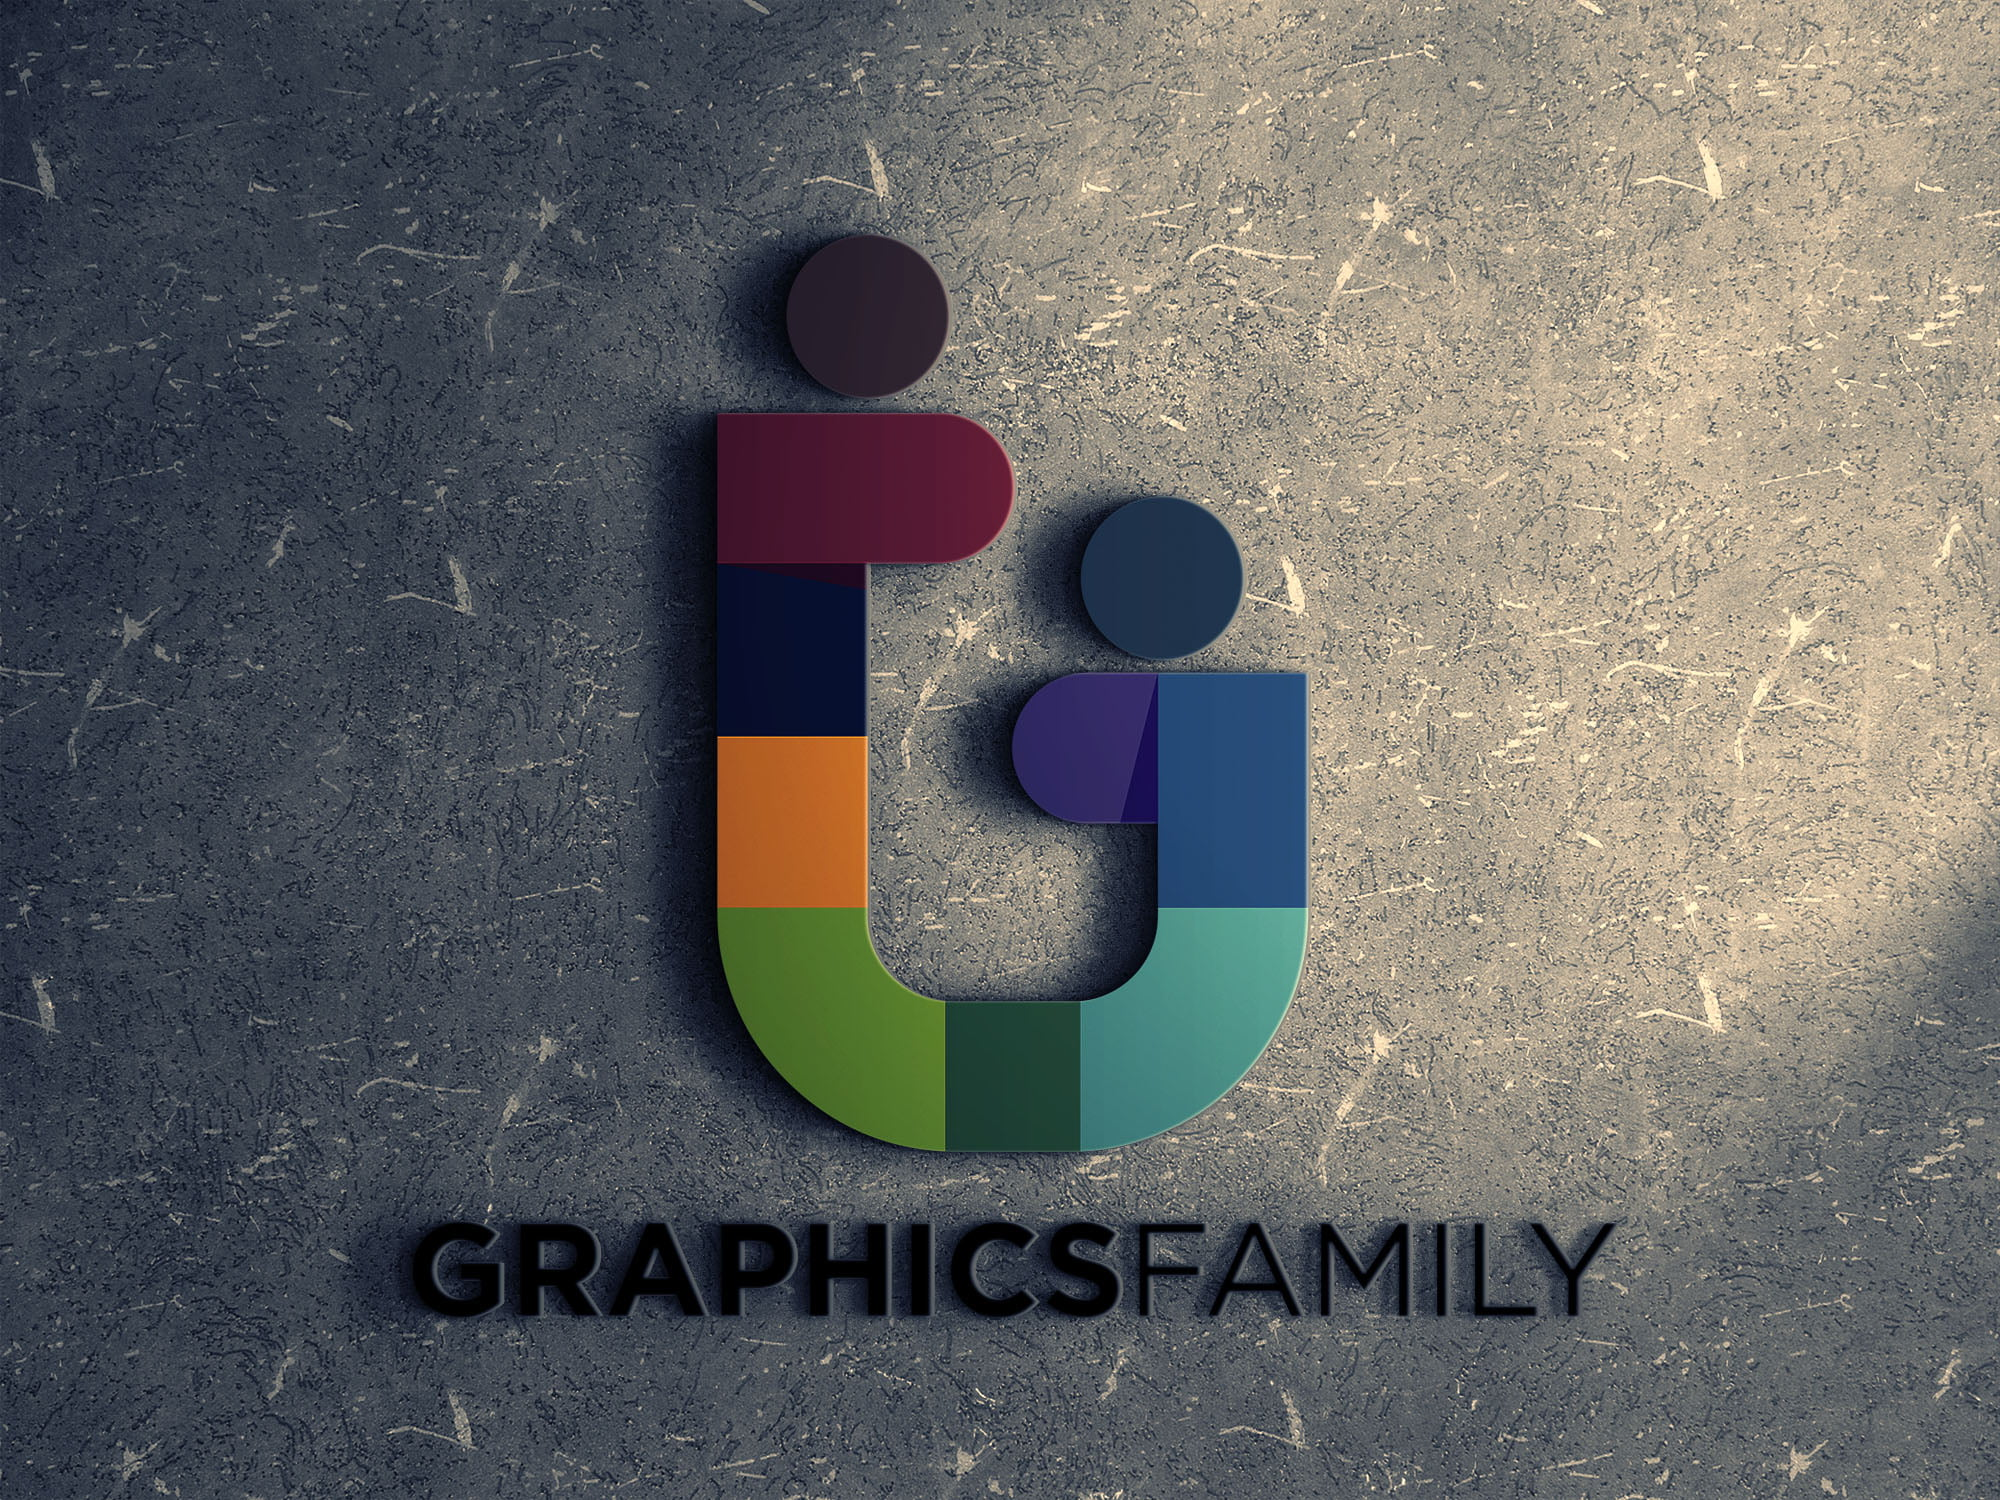 Graphicsfamily logo on ceramic wall